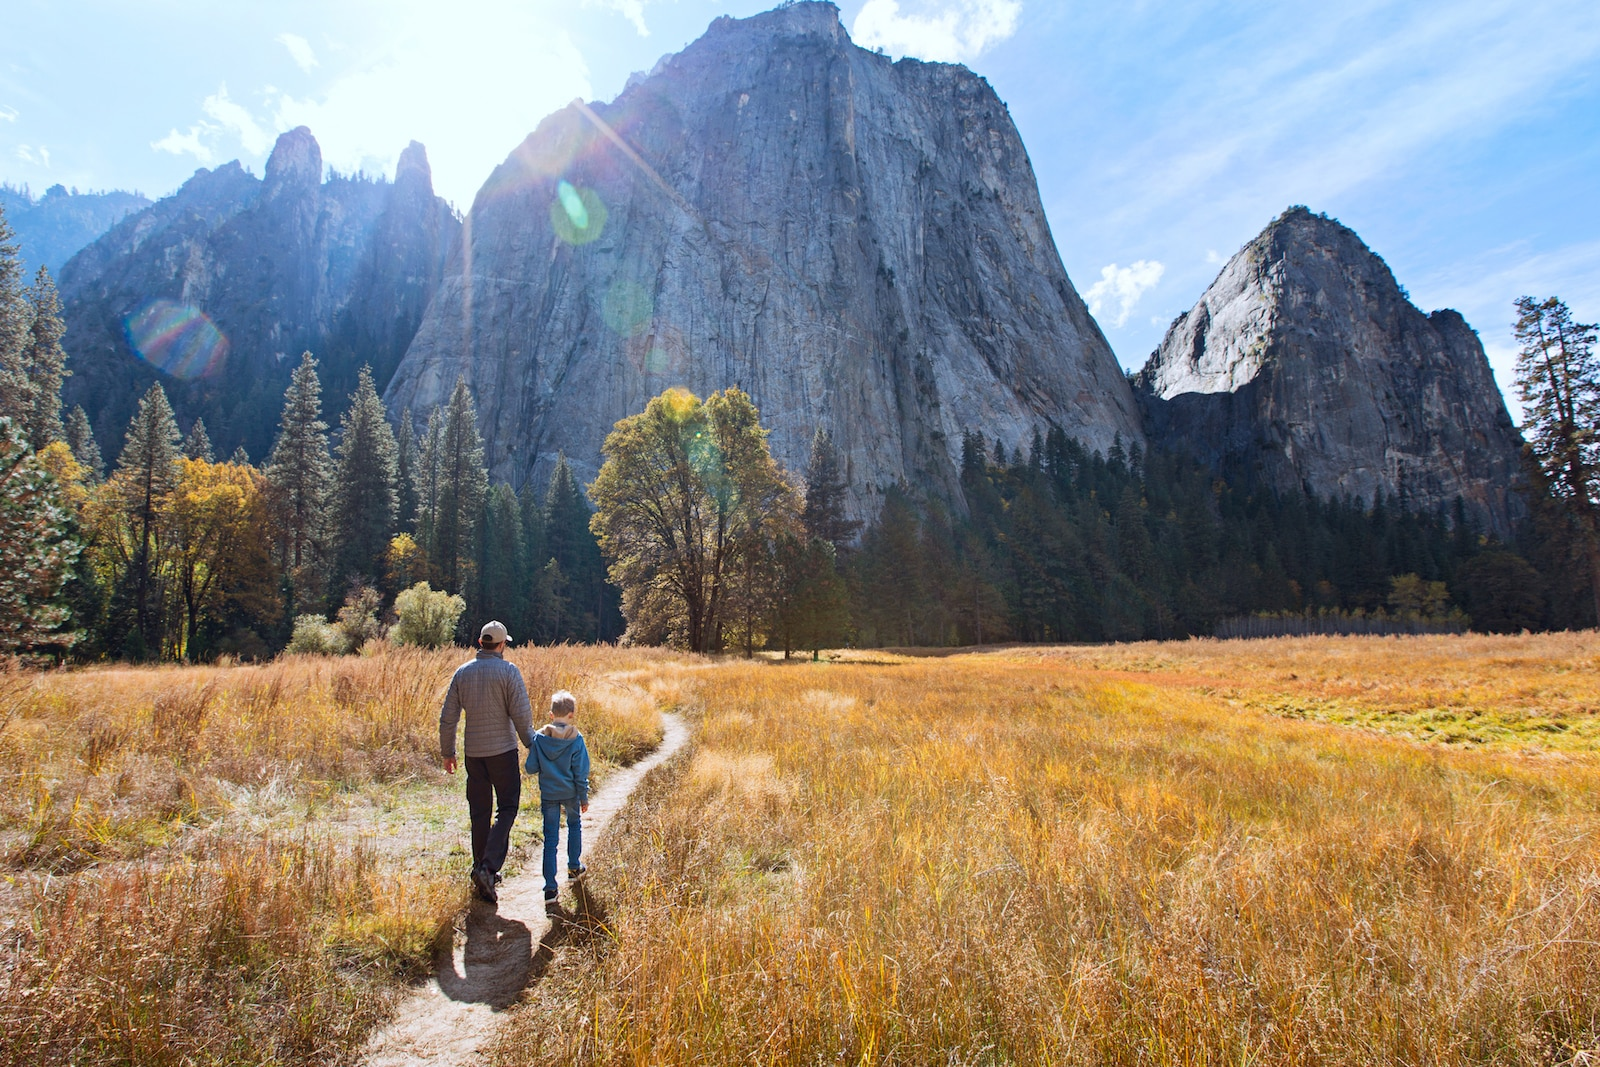 back view of active family of two, father and son, enjoying valley and mountain view in yosemite national park, california, active family vacation concept (back view of active family of two, father and son, enjoying valley and mountain view in yosemit